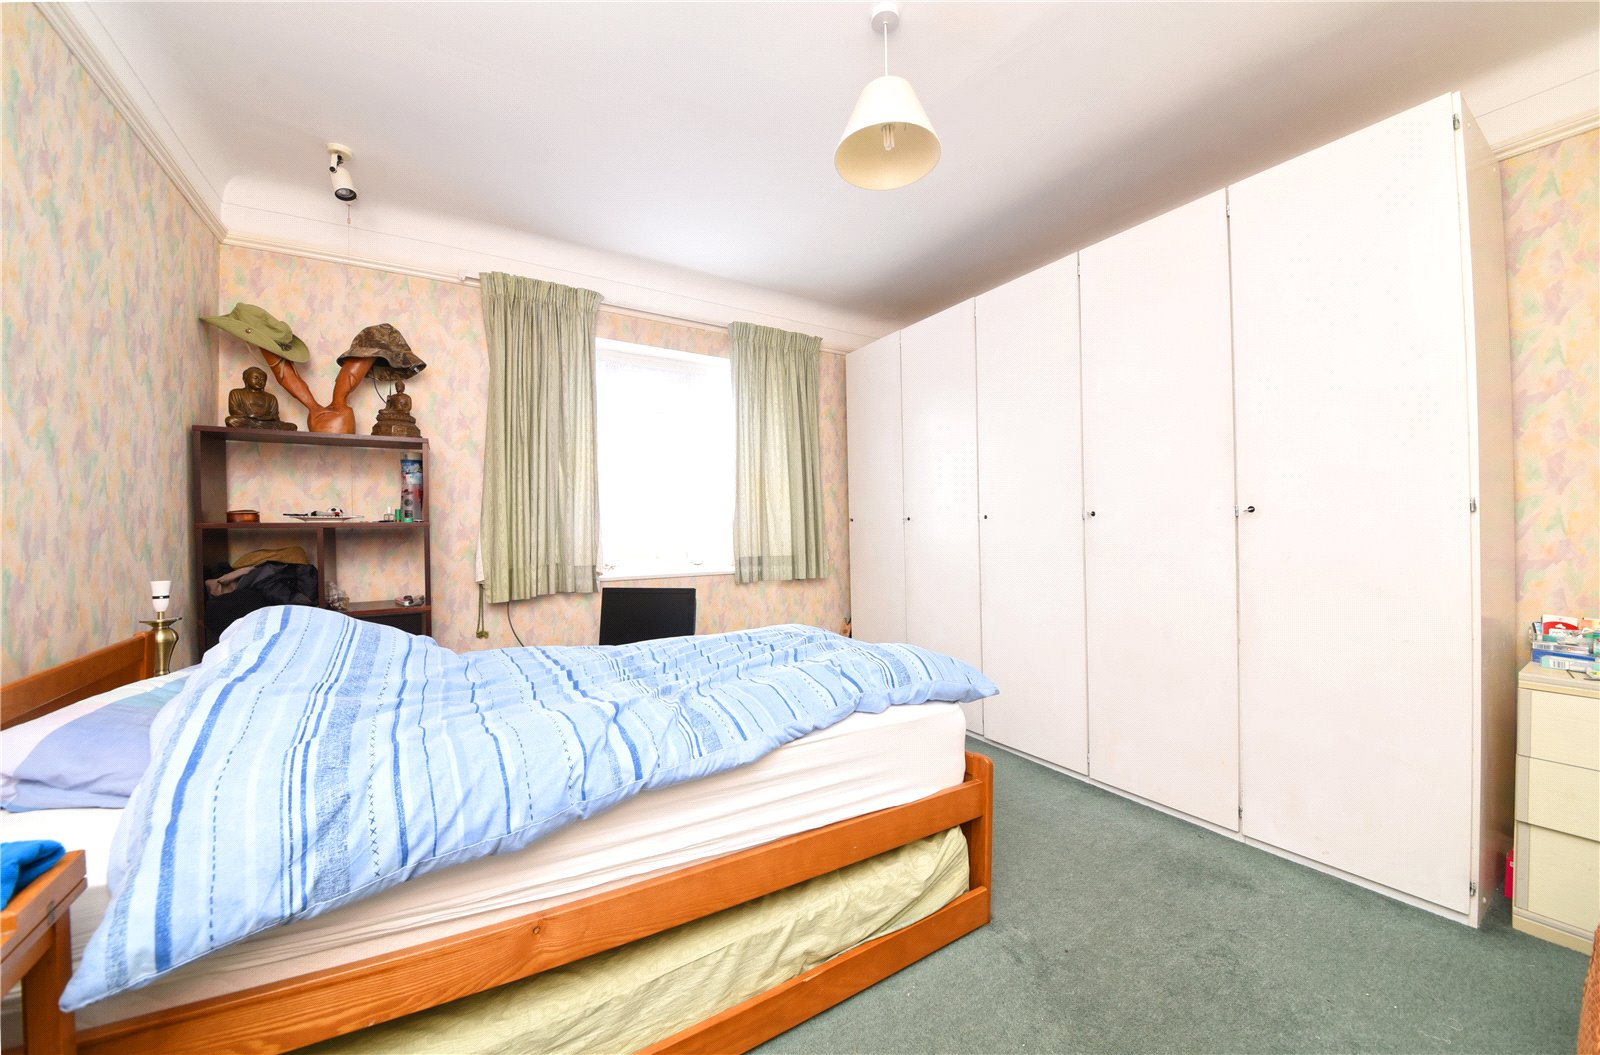 3 bed house for sale in London, N12 9ND  - Property Image 10